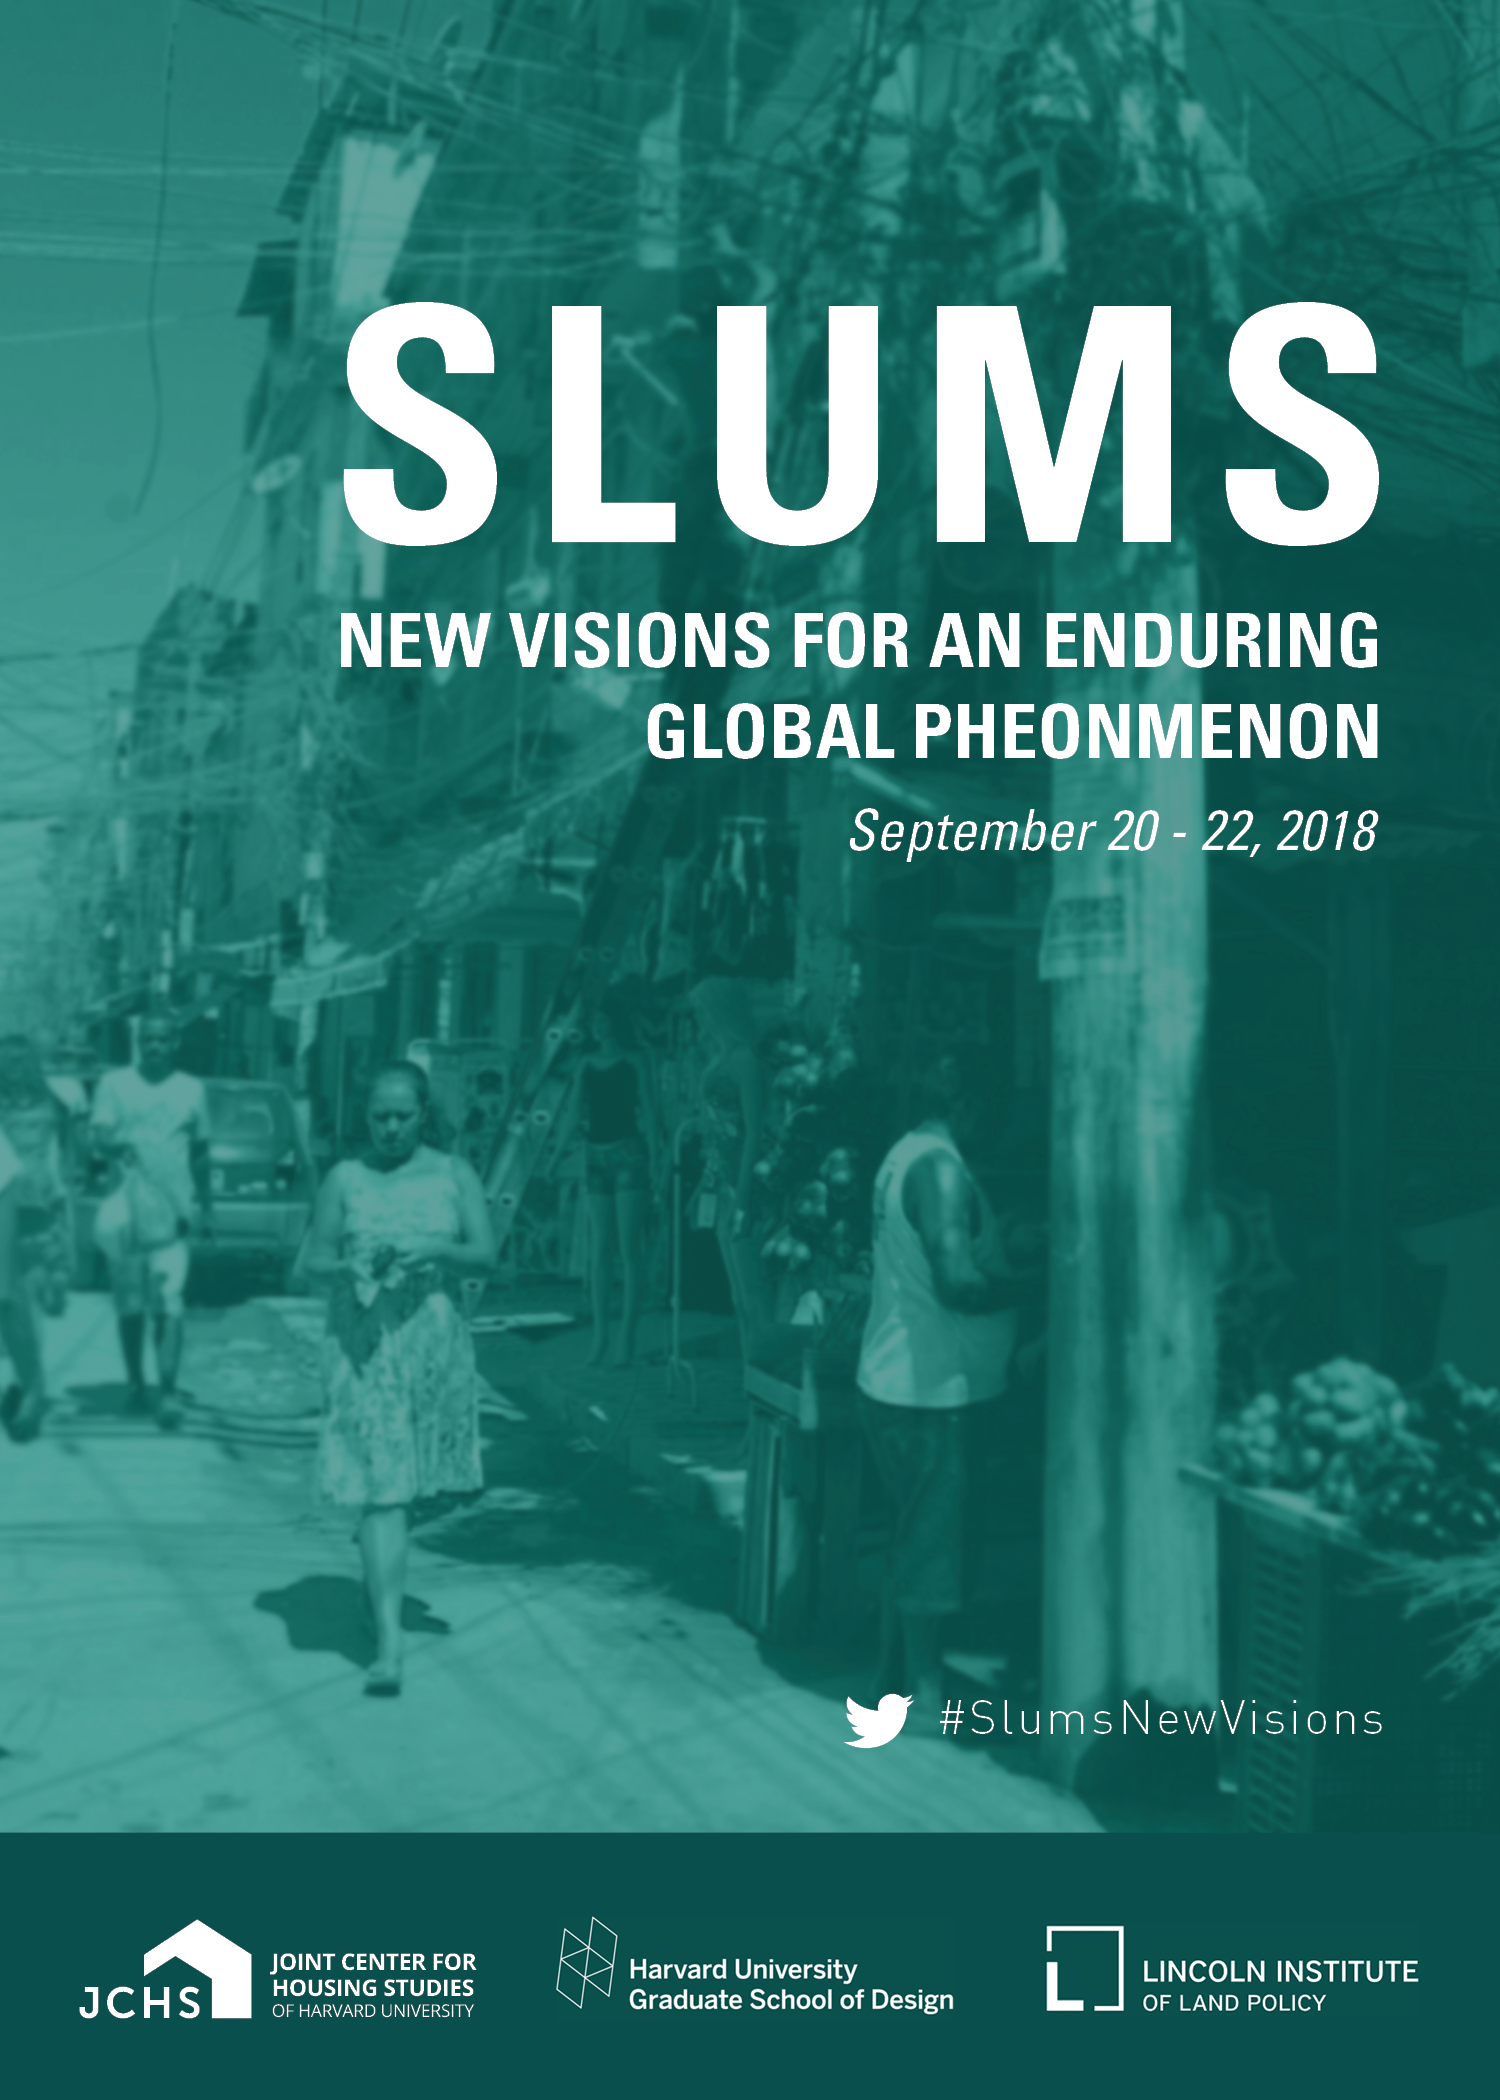 Slums: New Visions for an Enduring Global Phenomenon